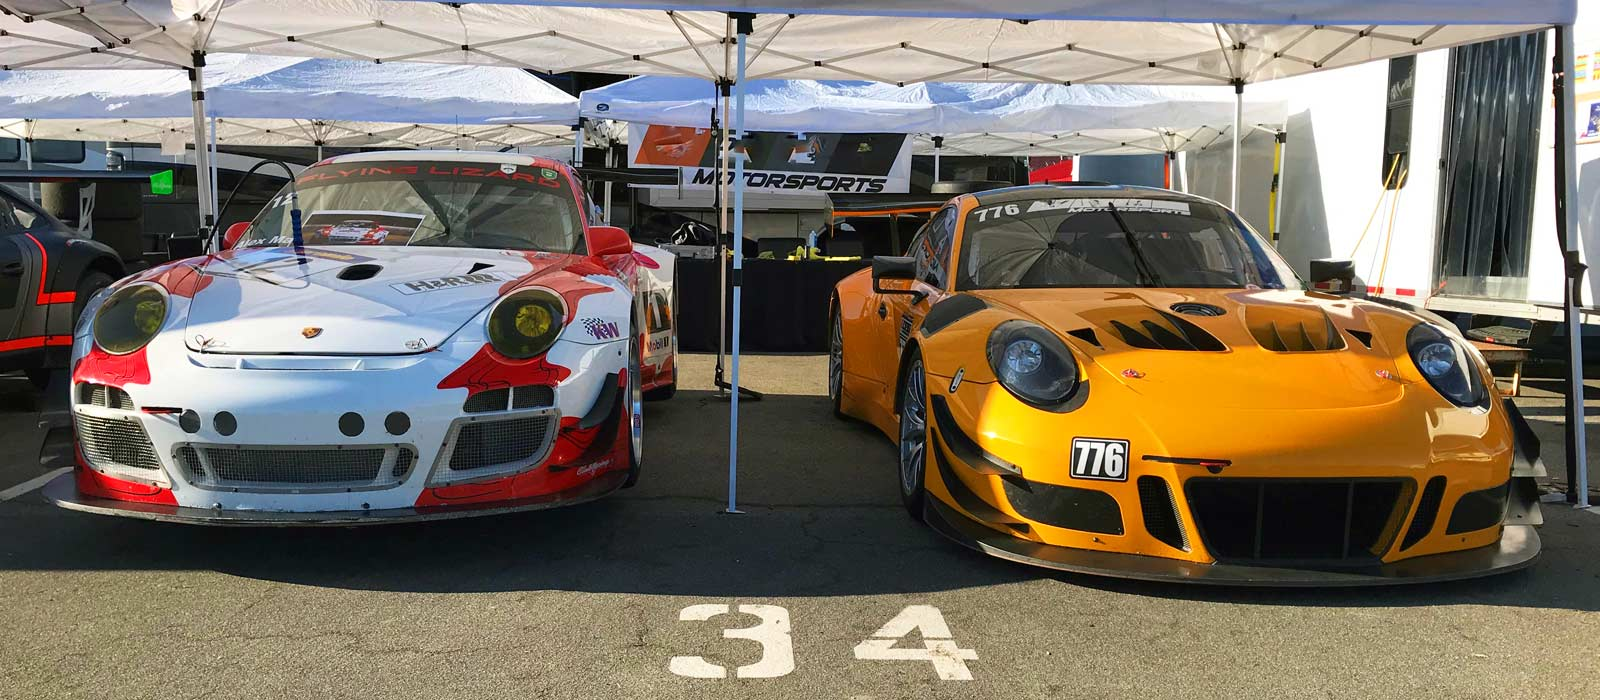 Porsche pit crew UTI instructor blog image